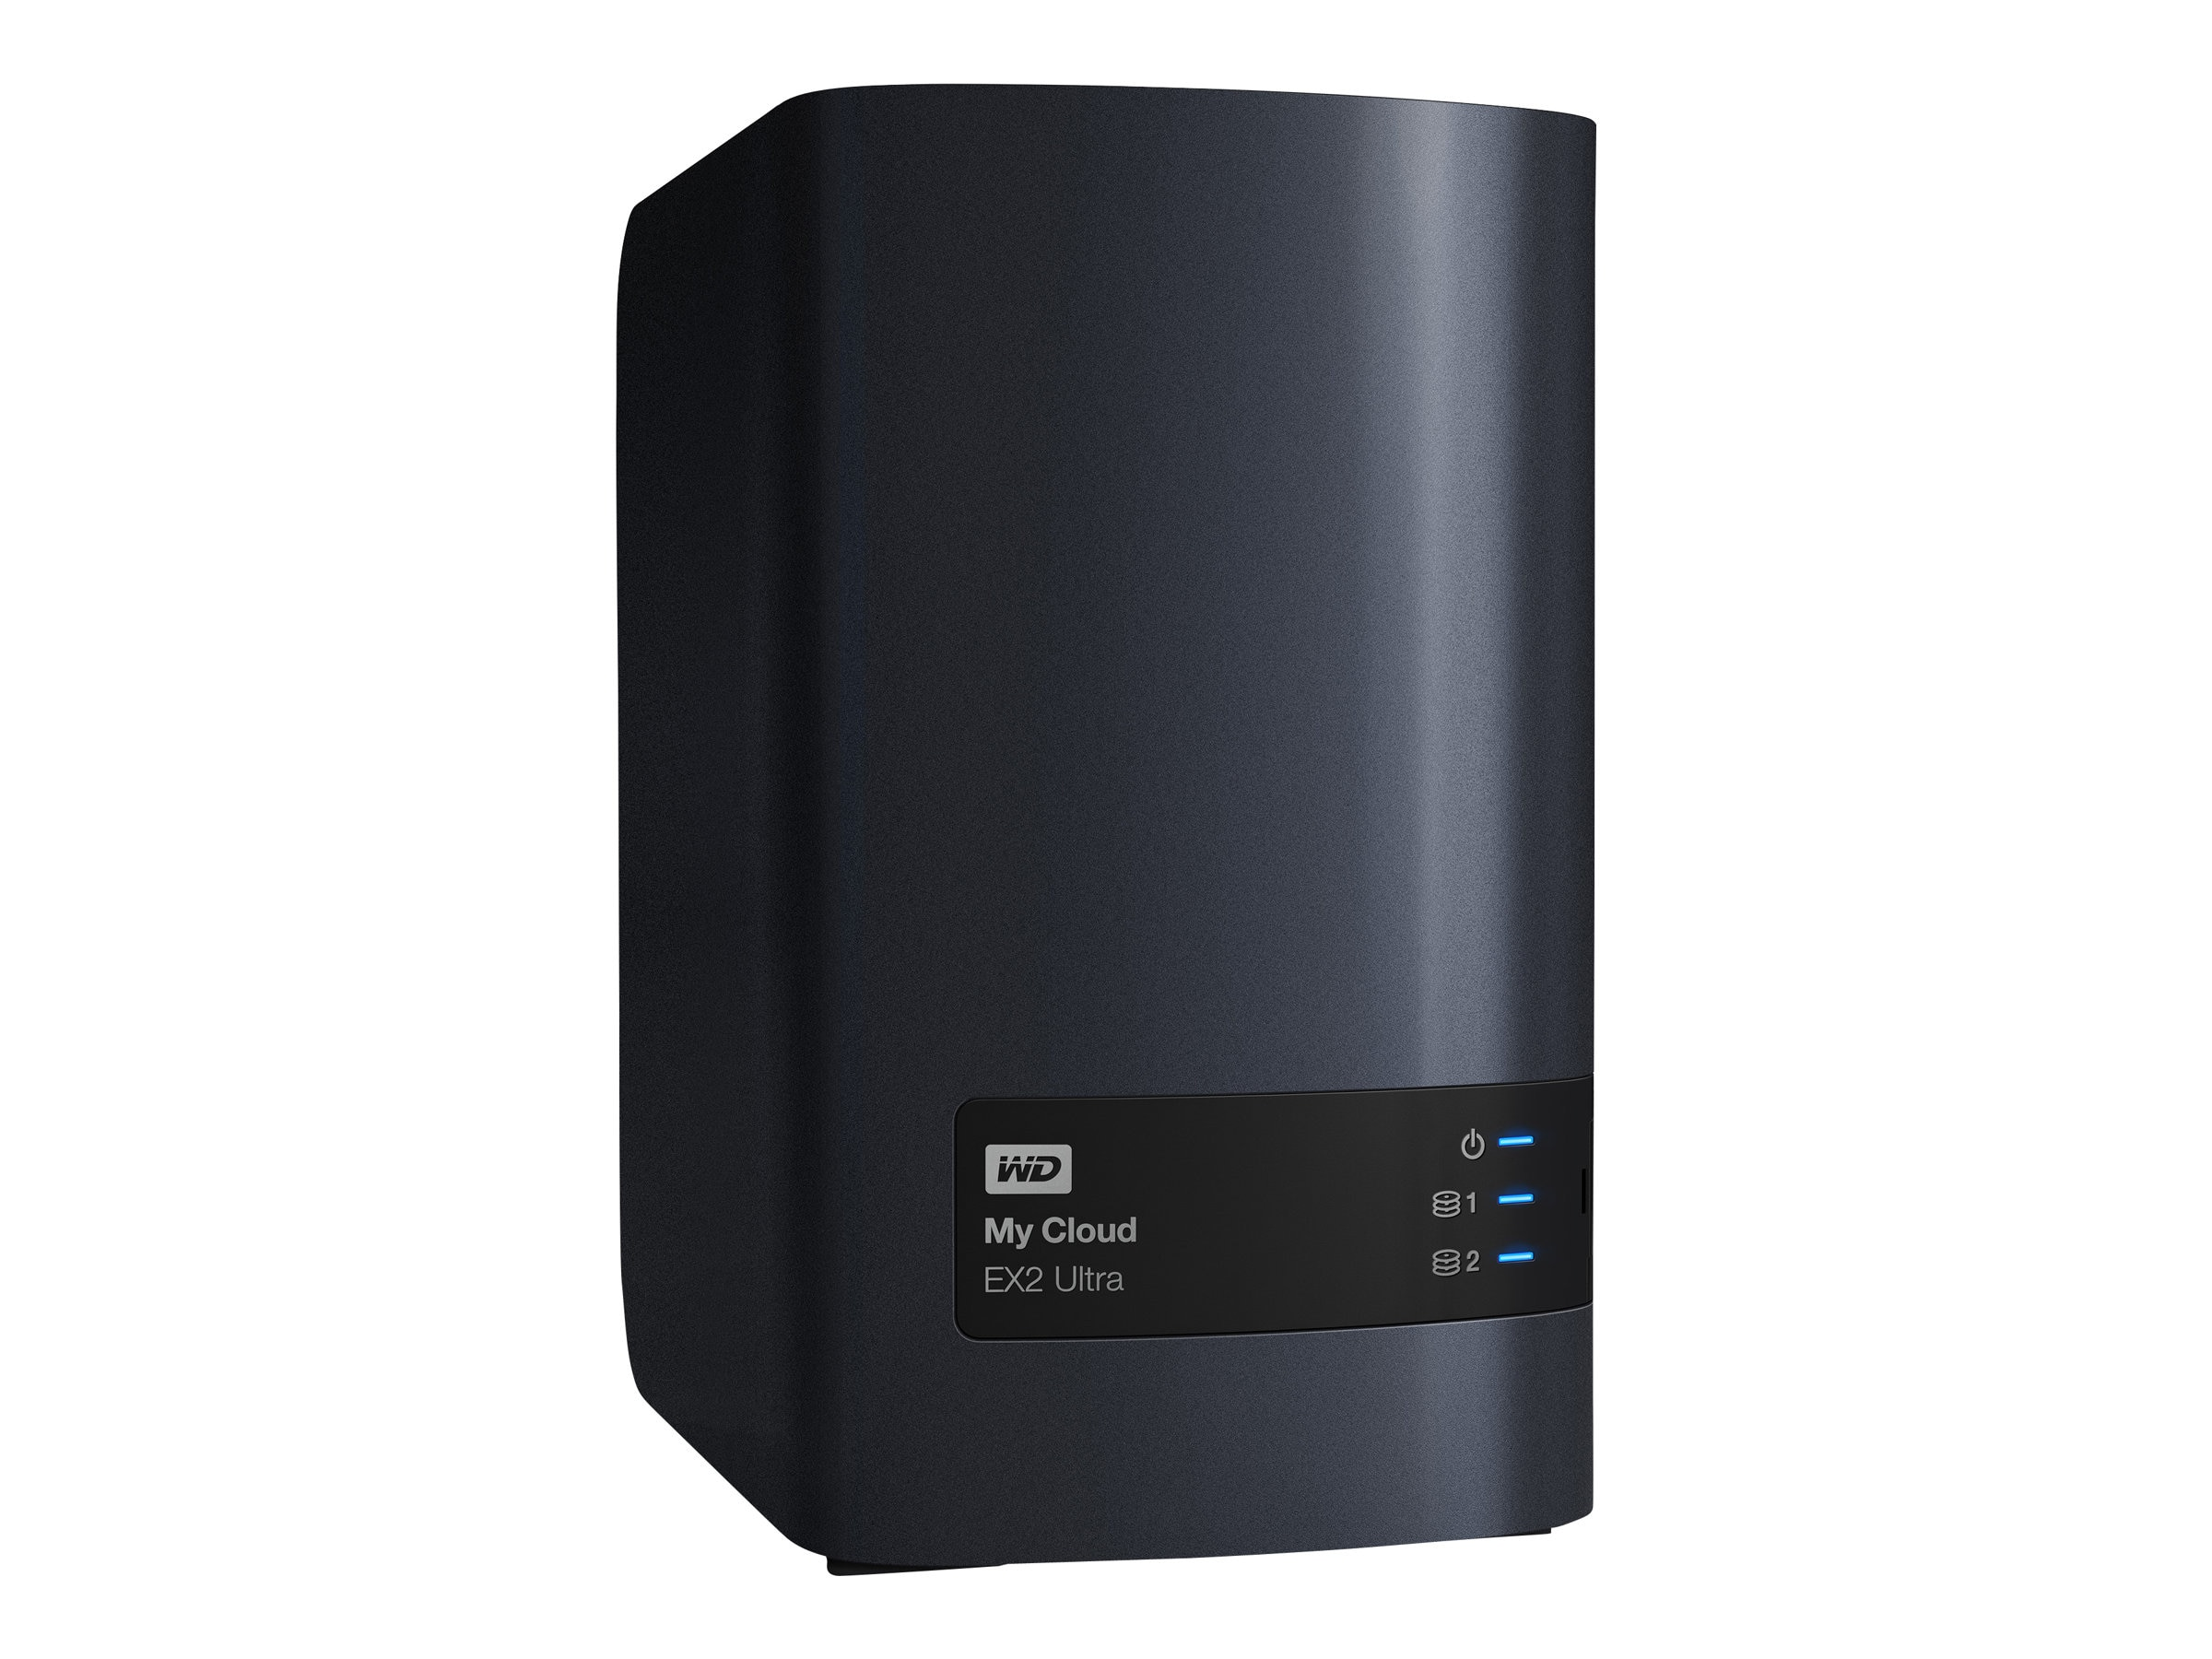 WD 8TB WD My Cloud EX2 Ultra Private Cloud NAS Storage, WDBVBZ0080JCH-NESN